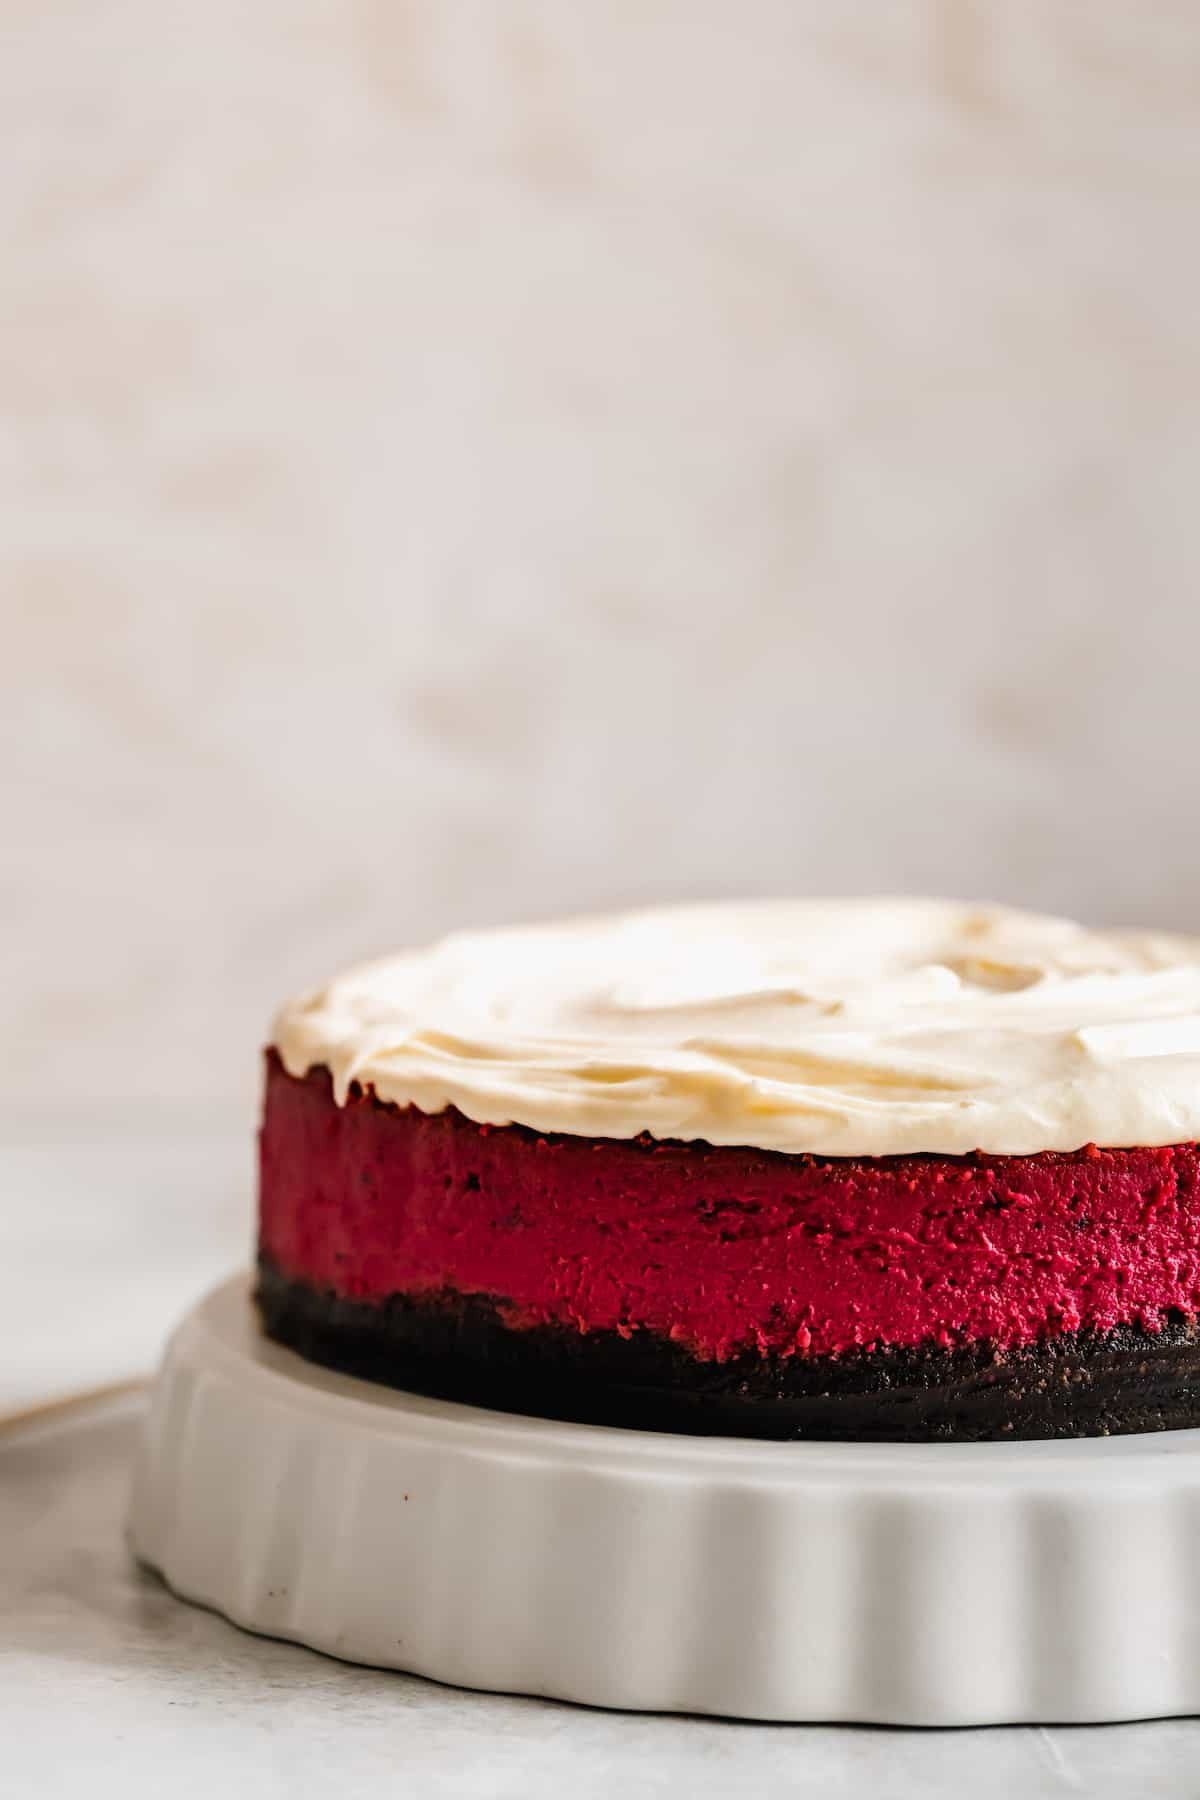 A Vibrant Red Velvet Cheesecake on a Cake Stand with a White Background